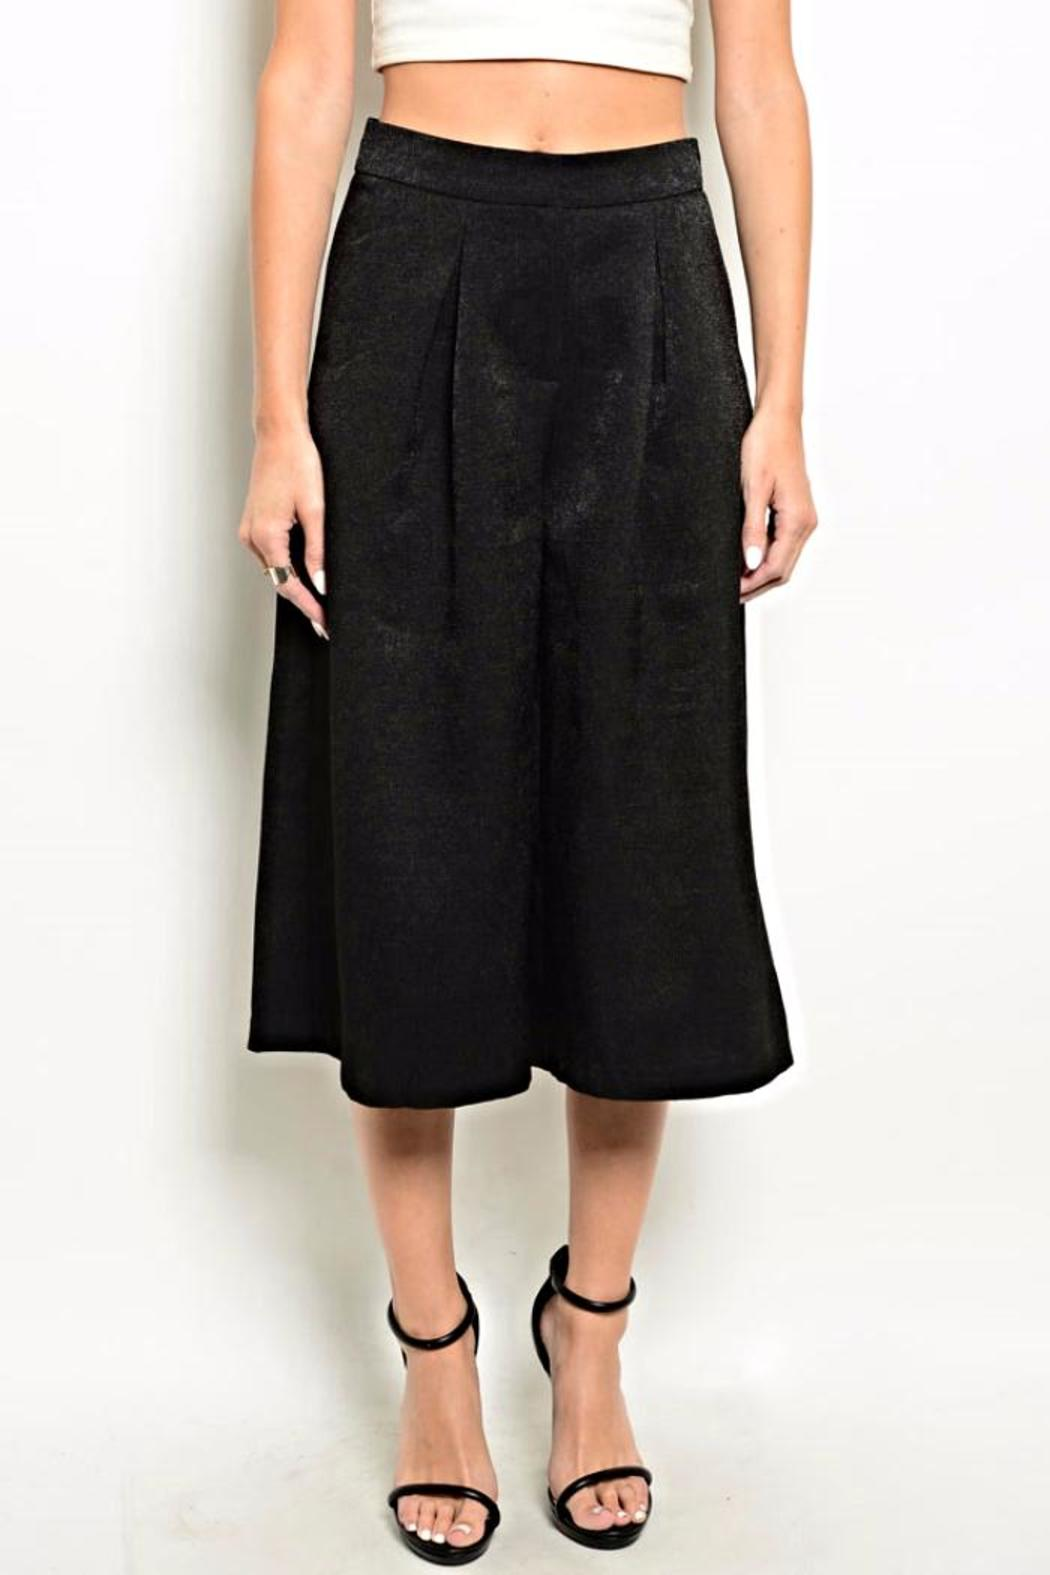 Very J Black Culotte Pants - Main Image